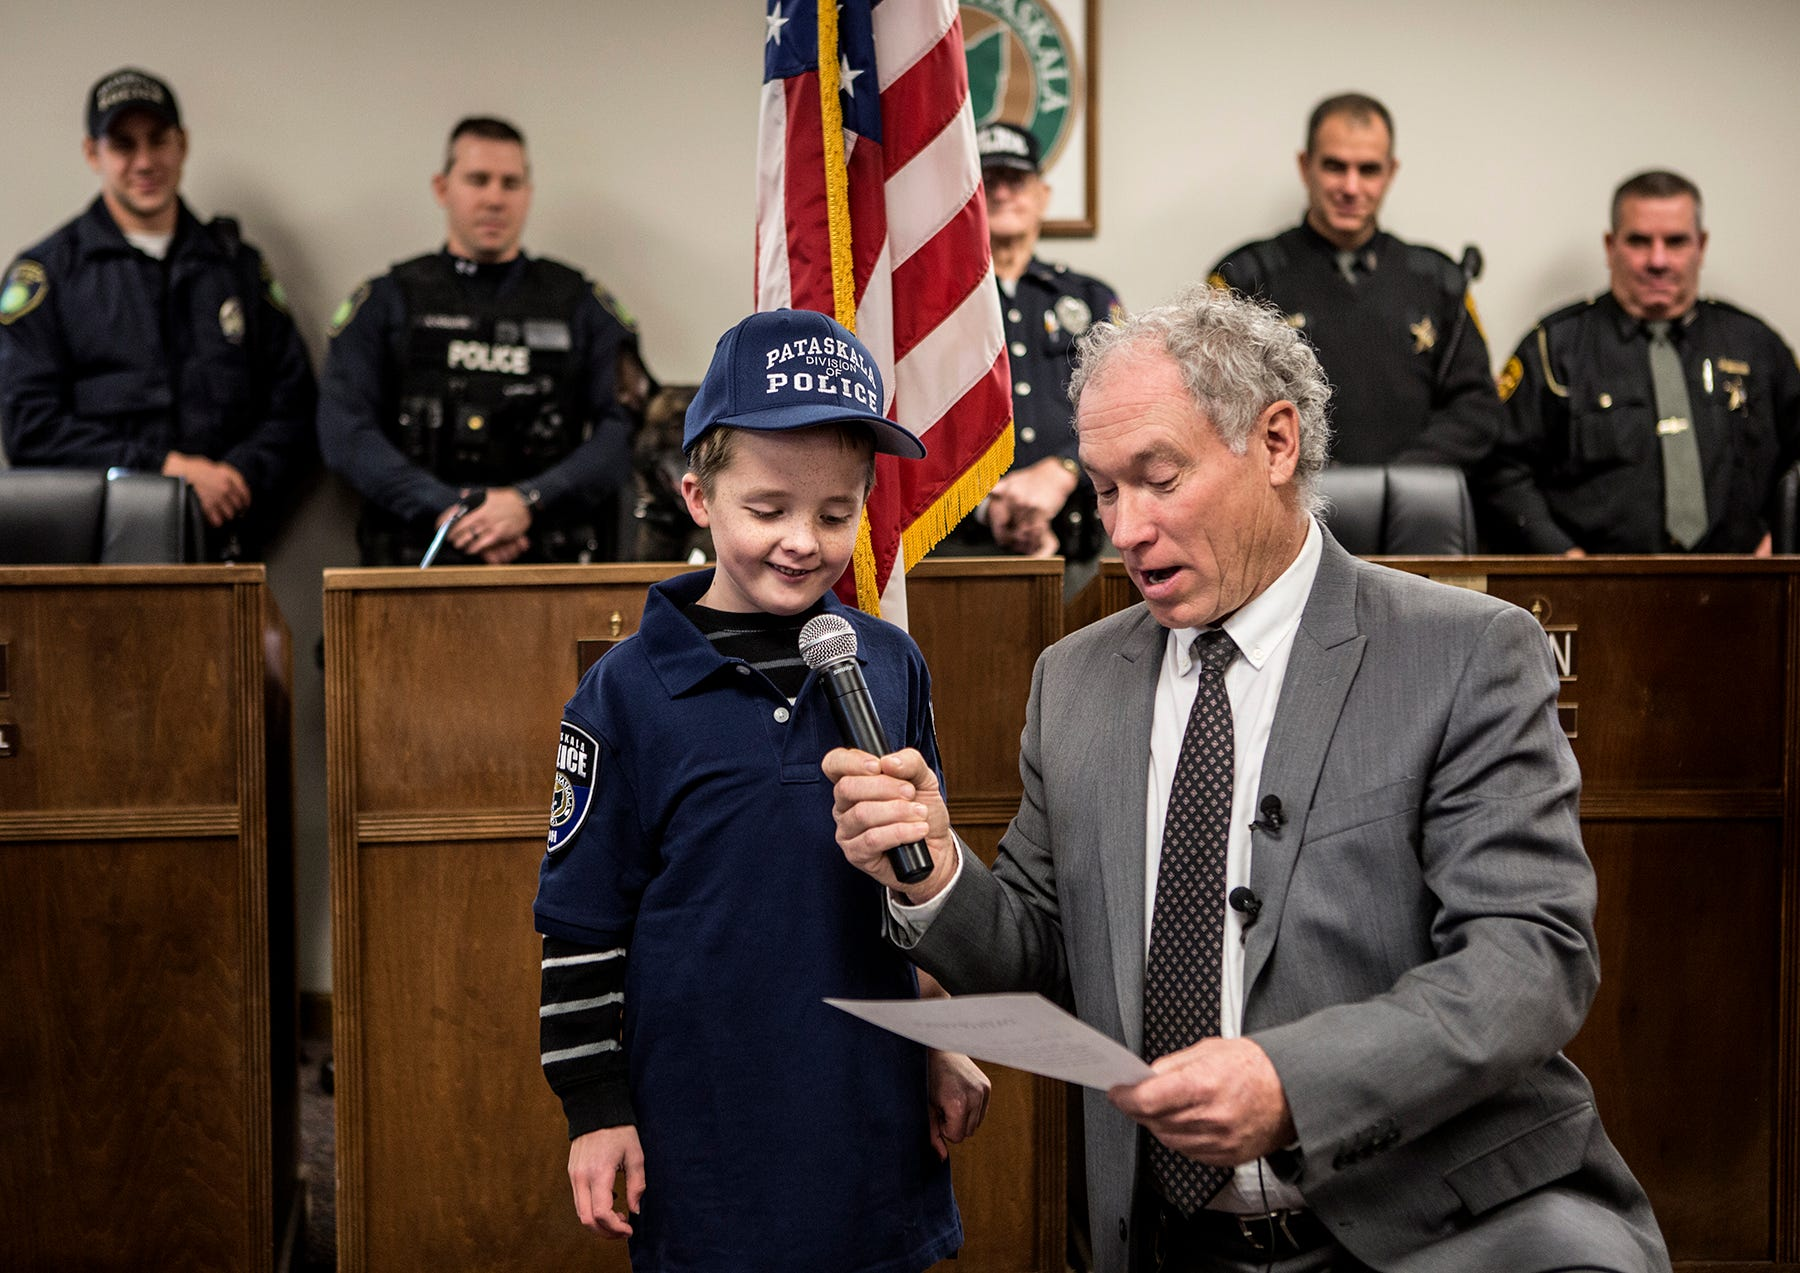 Awesome Braxton Long, 8, Is Sworn In To The Pataskala Police